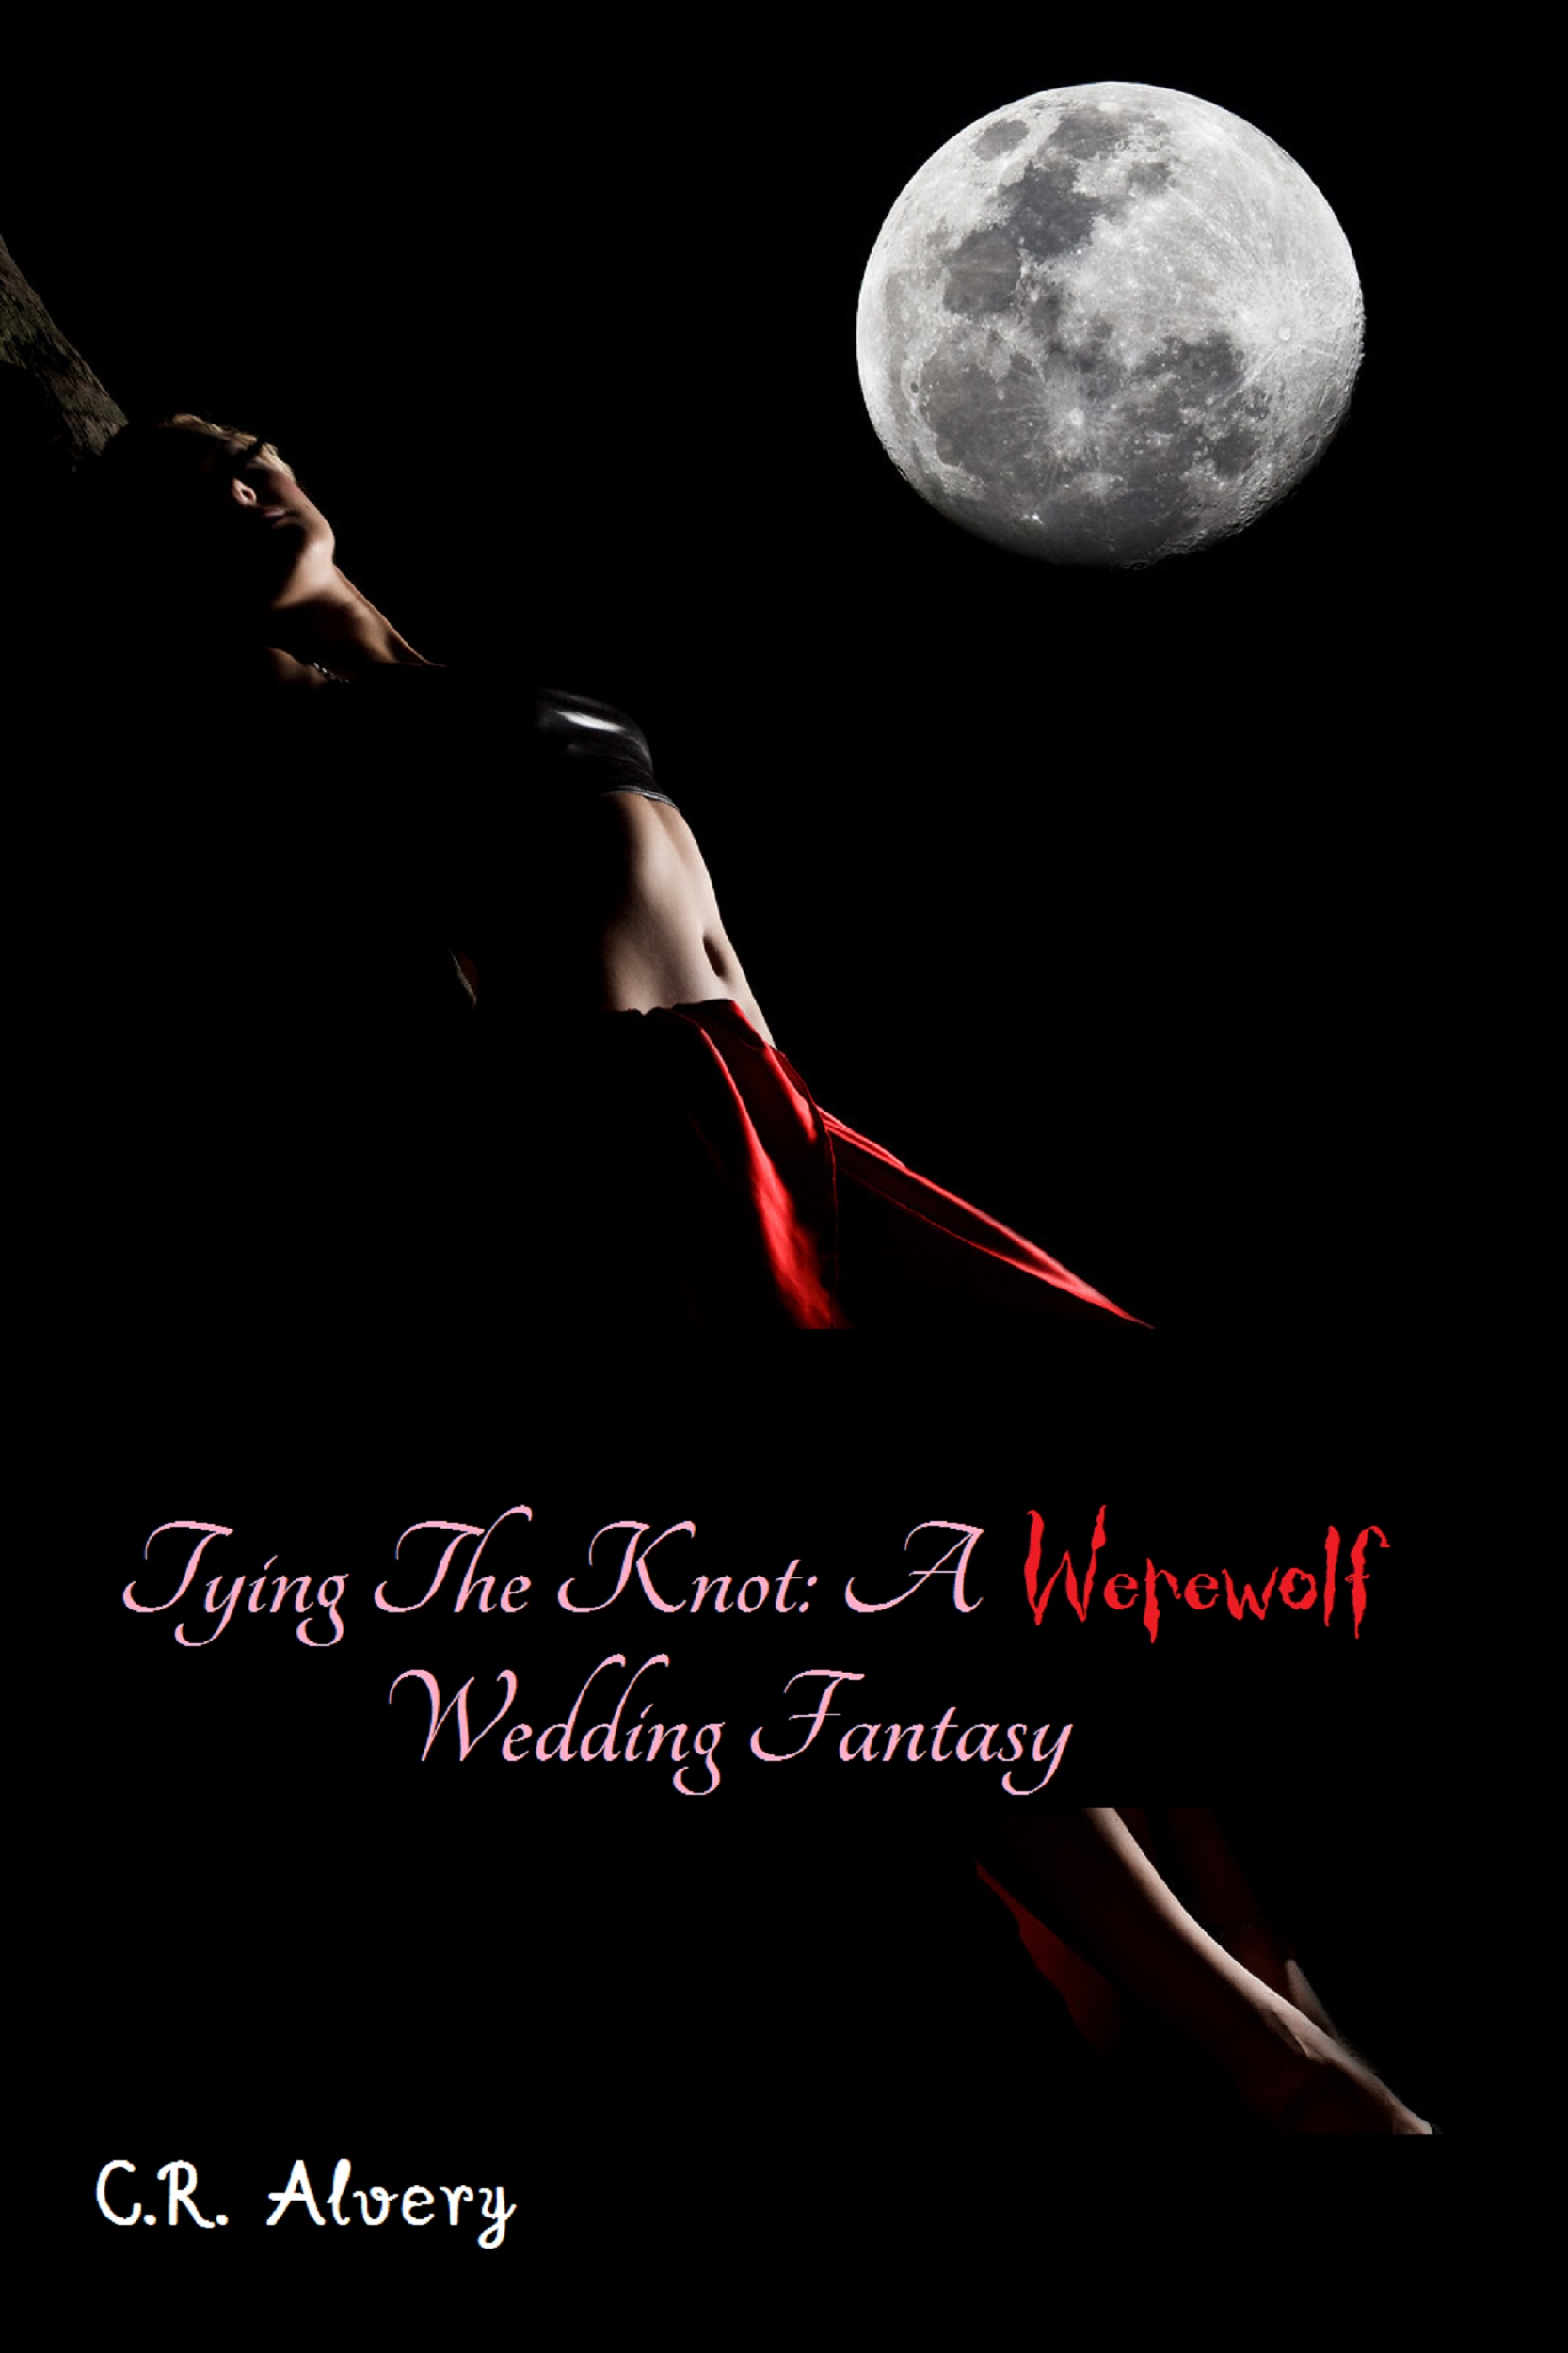 Tying The Knot A Werewolf Wedding Fantasy (werewolf, tying, werewolf sex, straight sex)